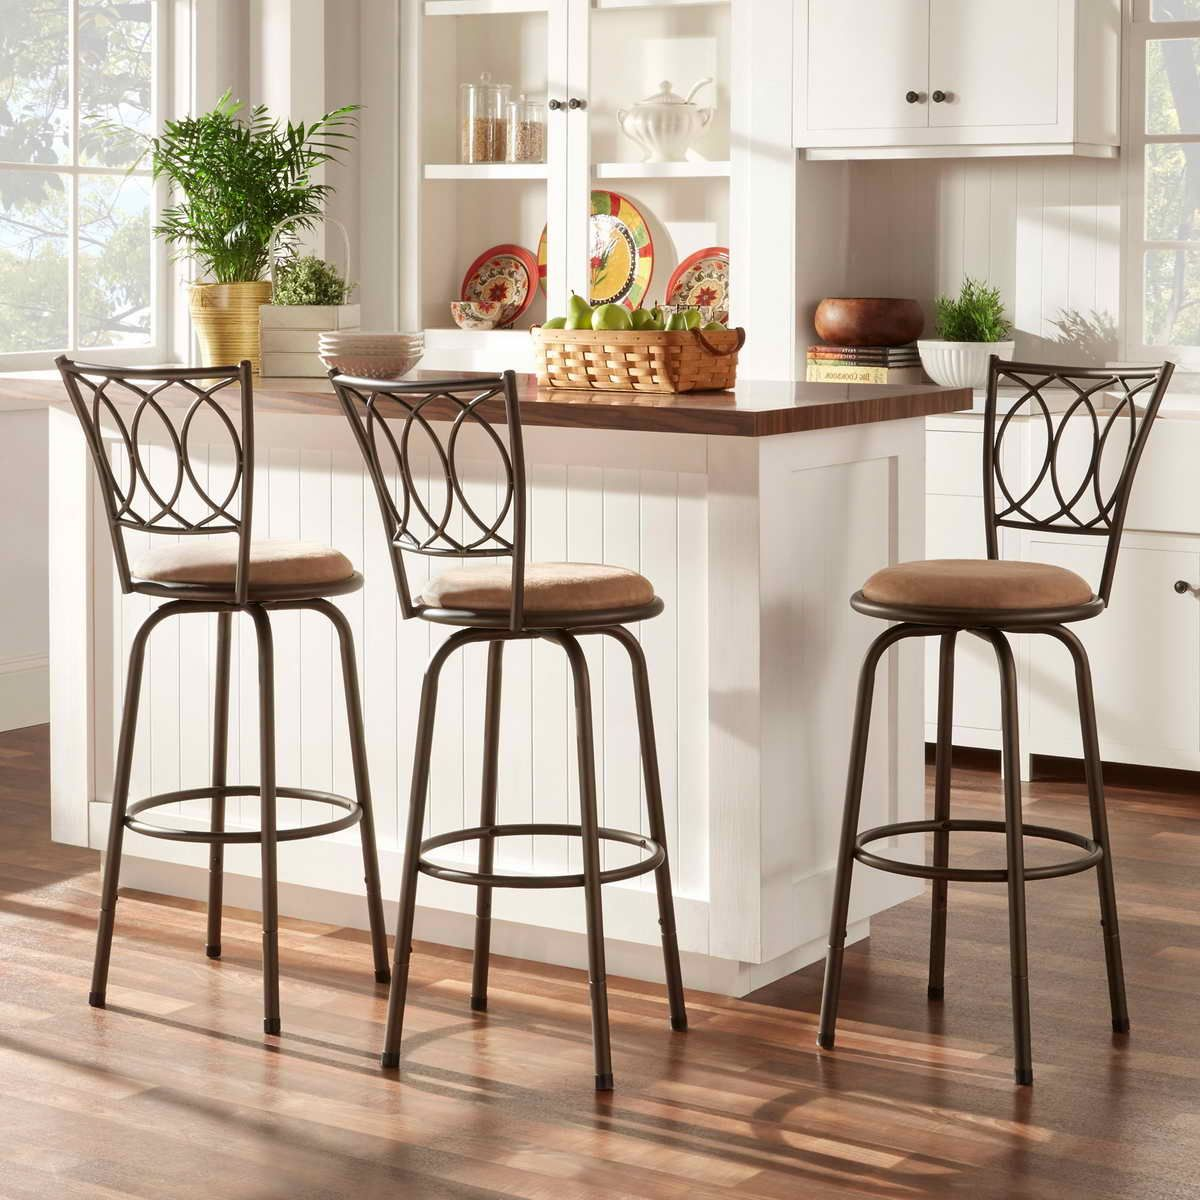 overstock kitchen cabinets with the design of the iron bar